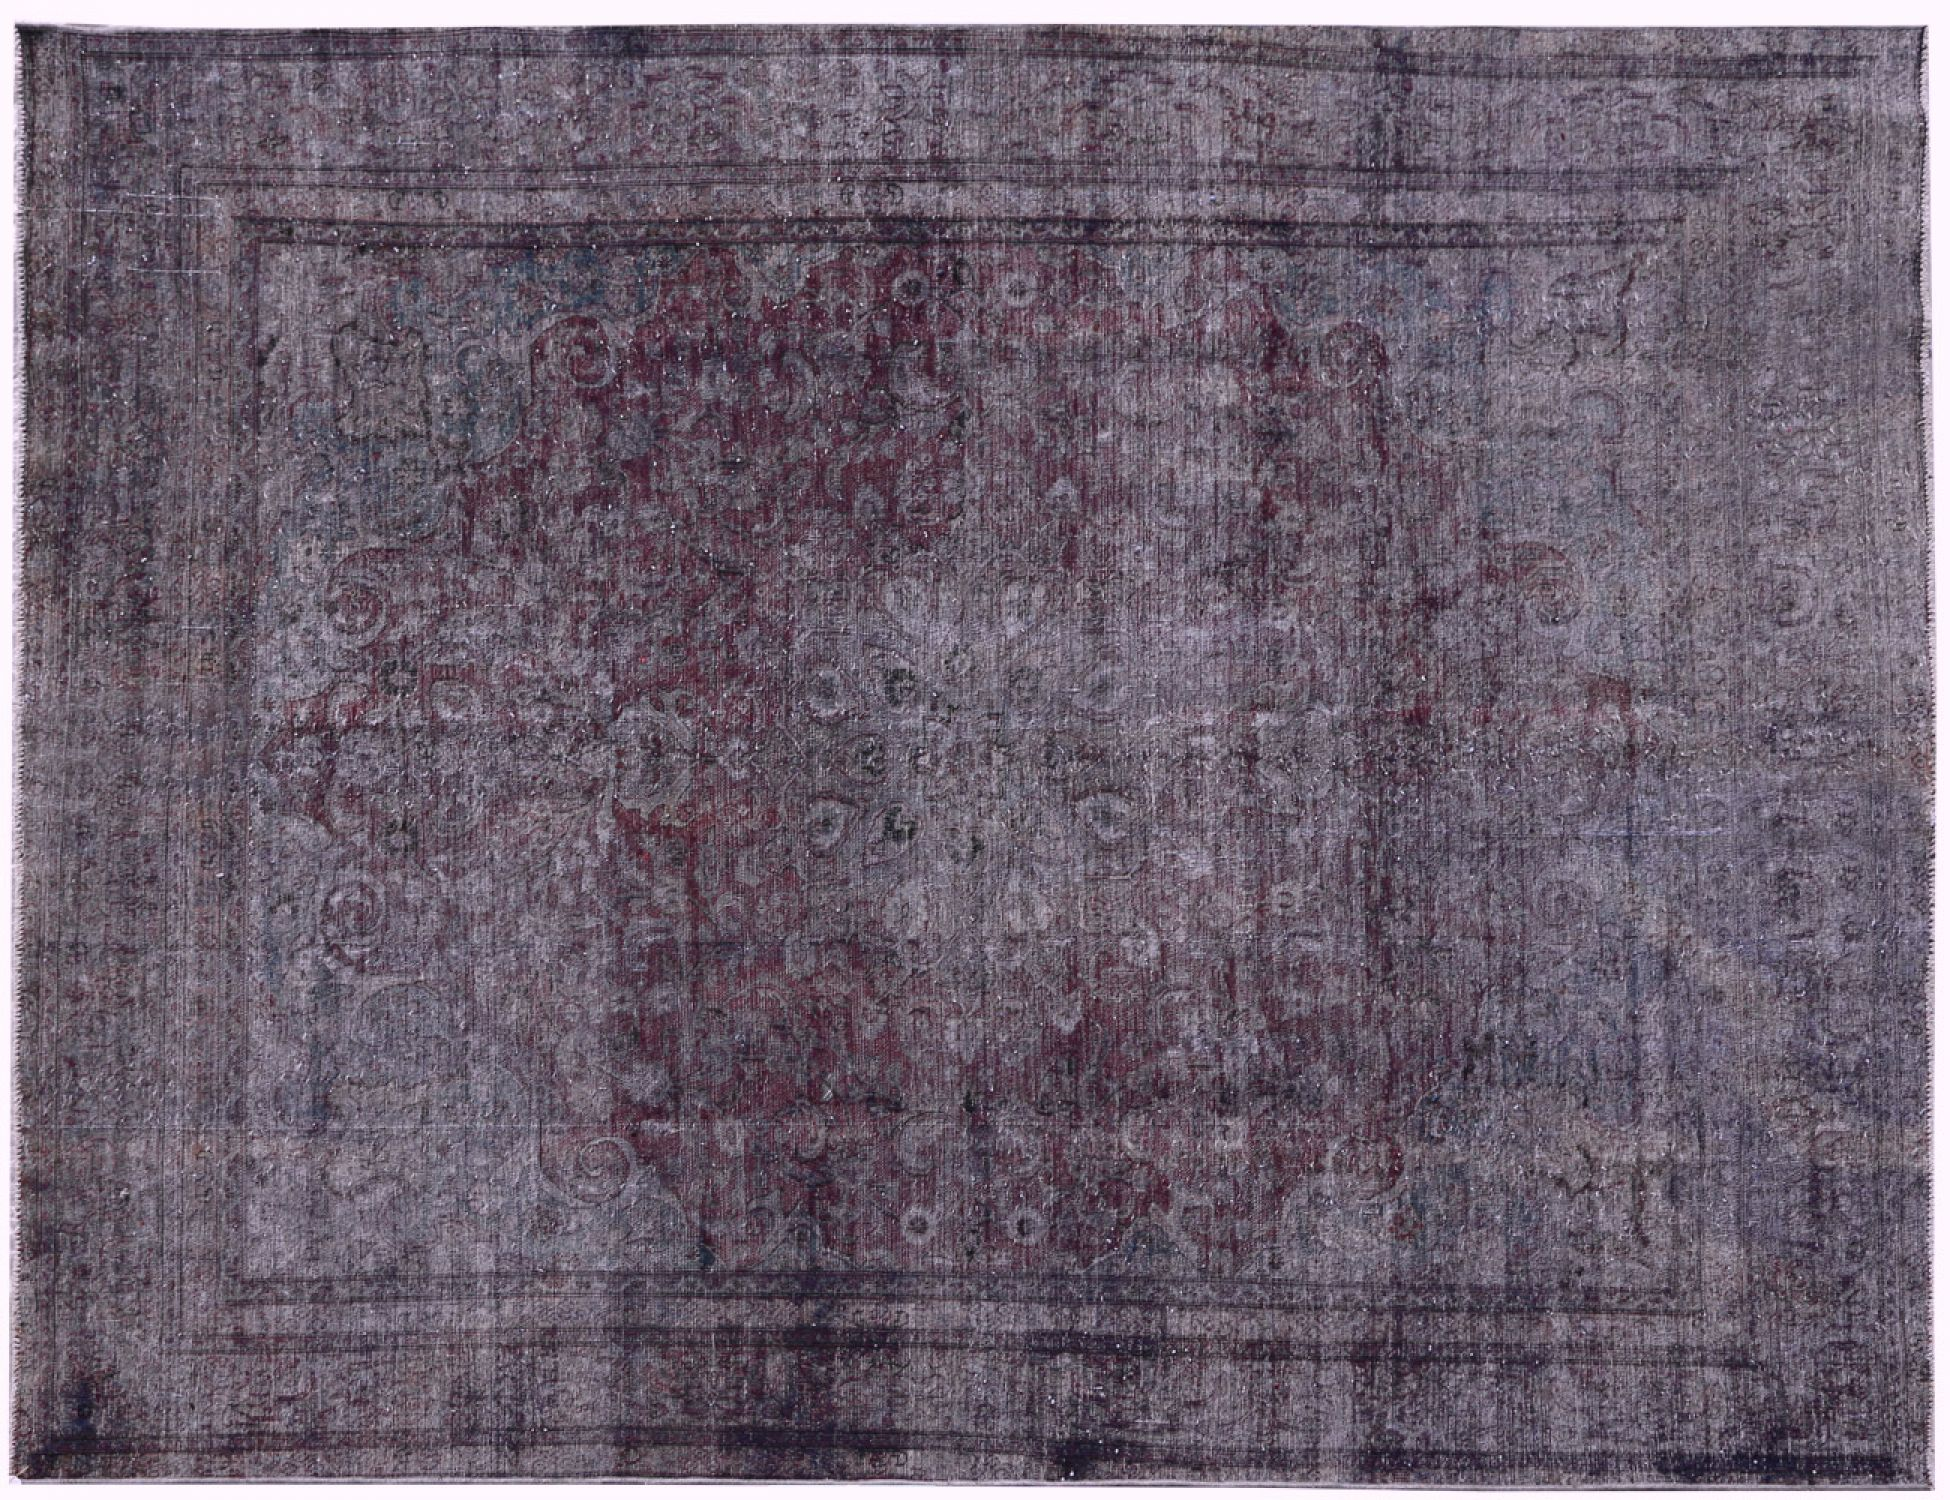 Vintage Carpet  grey <br/>346 x 269 cm